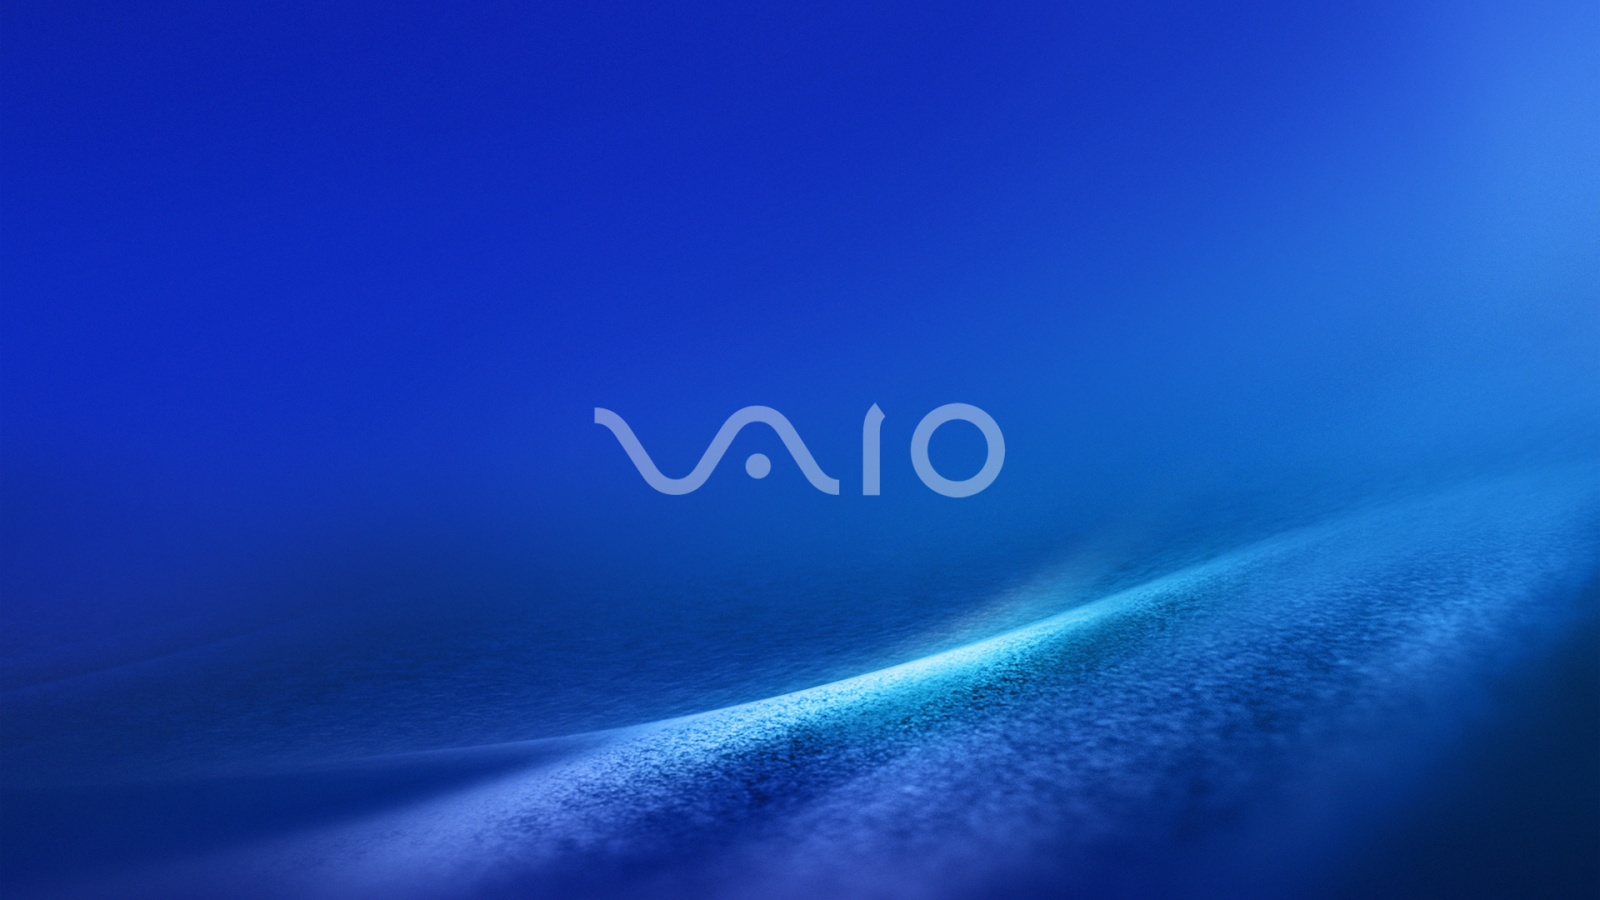 Hd Wallpapers For Windows 7 Download Sony Vaio Backgrounds Wallpapers 1600x900 266819